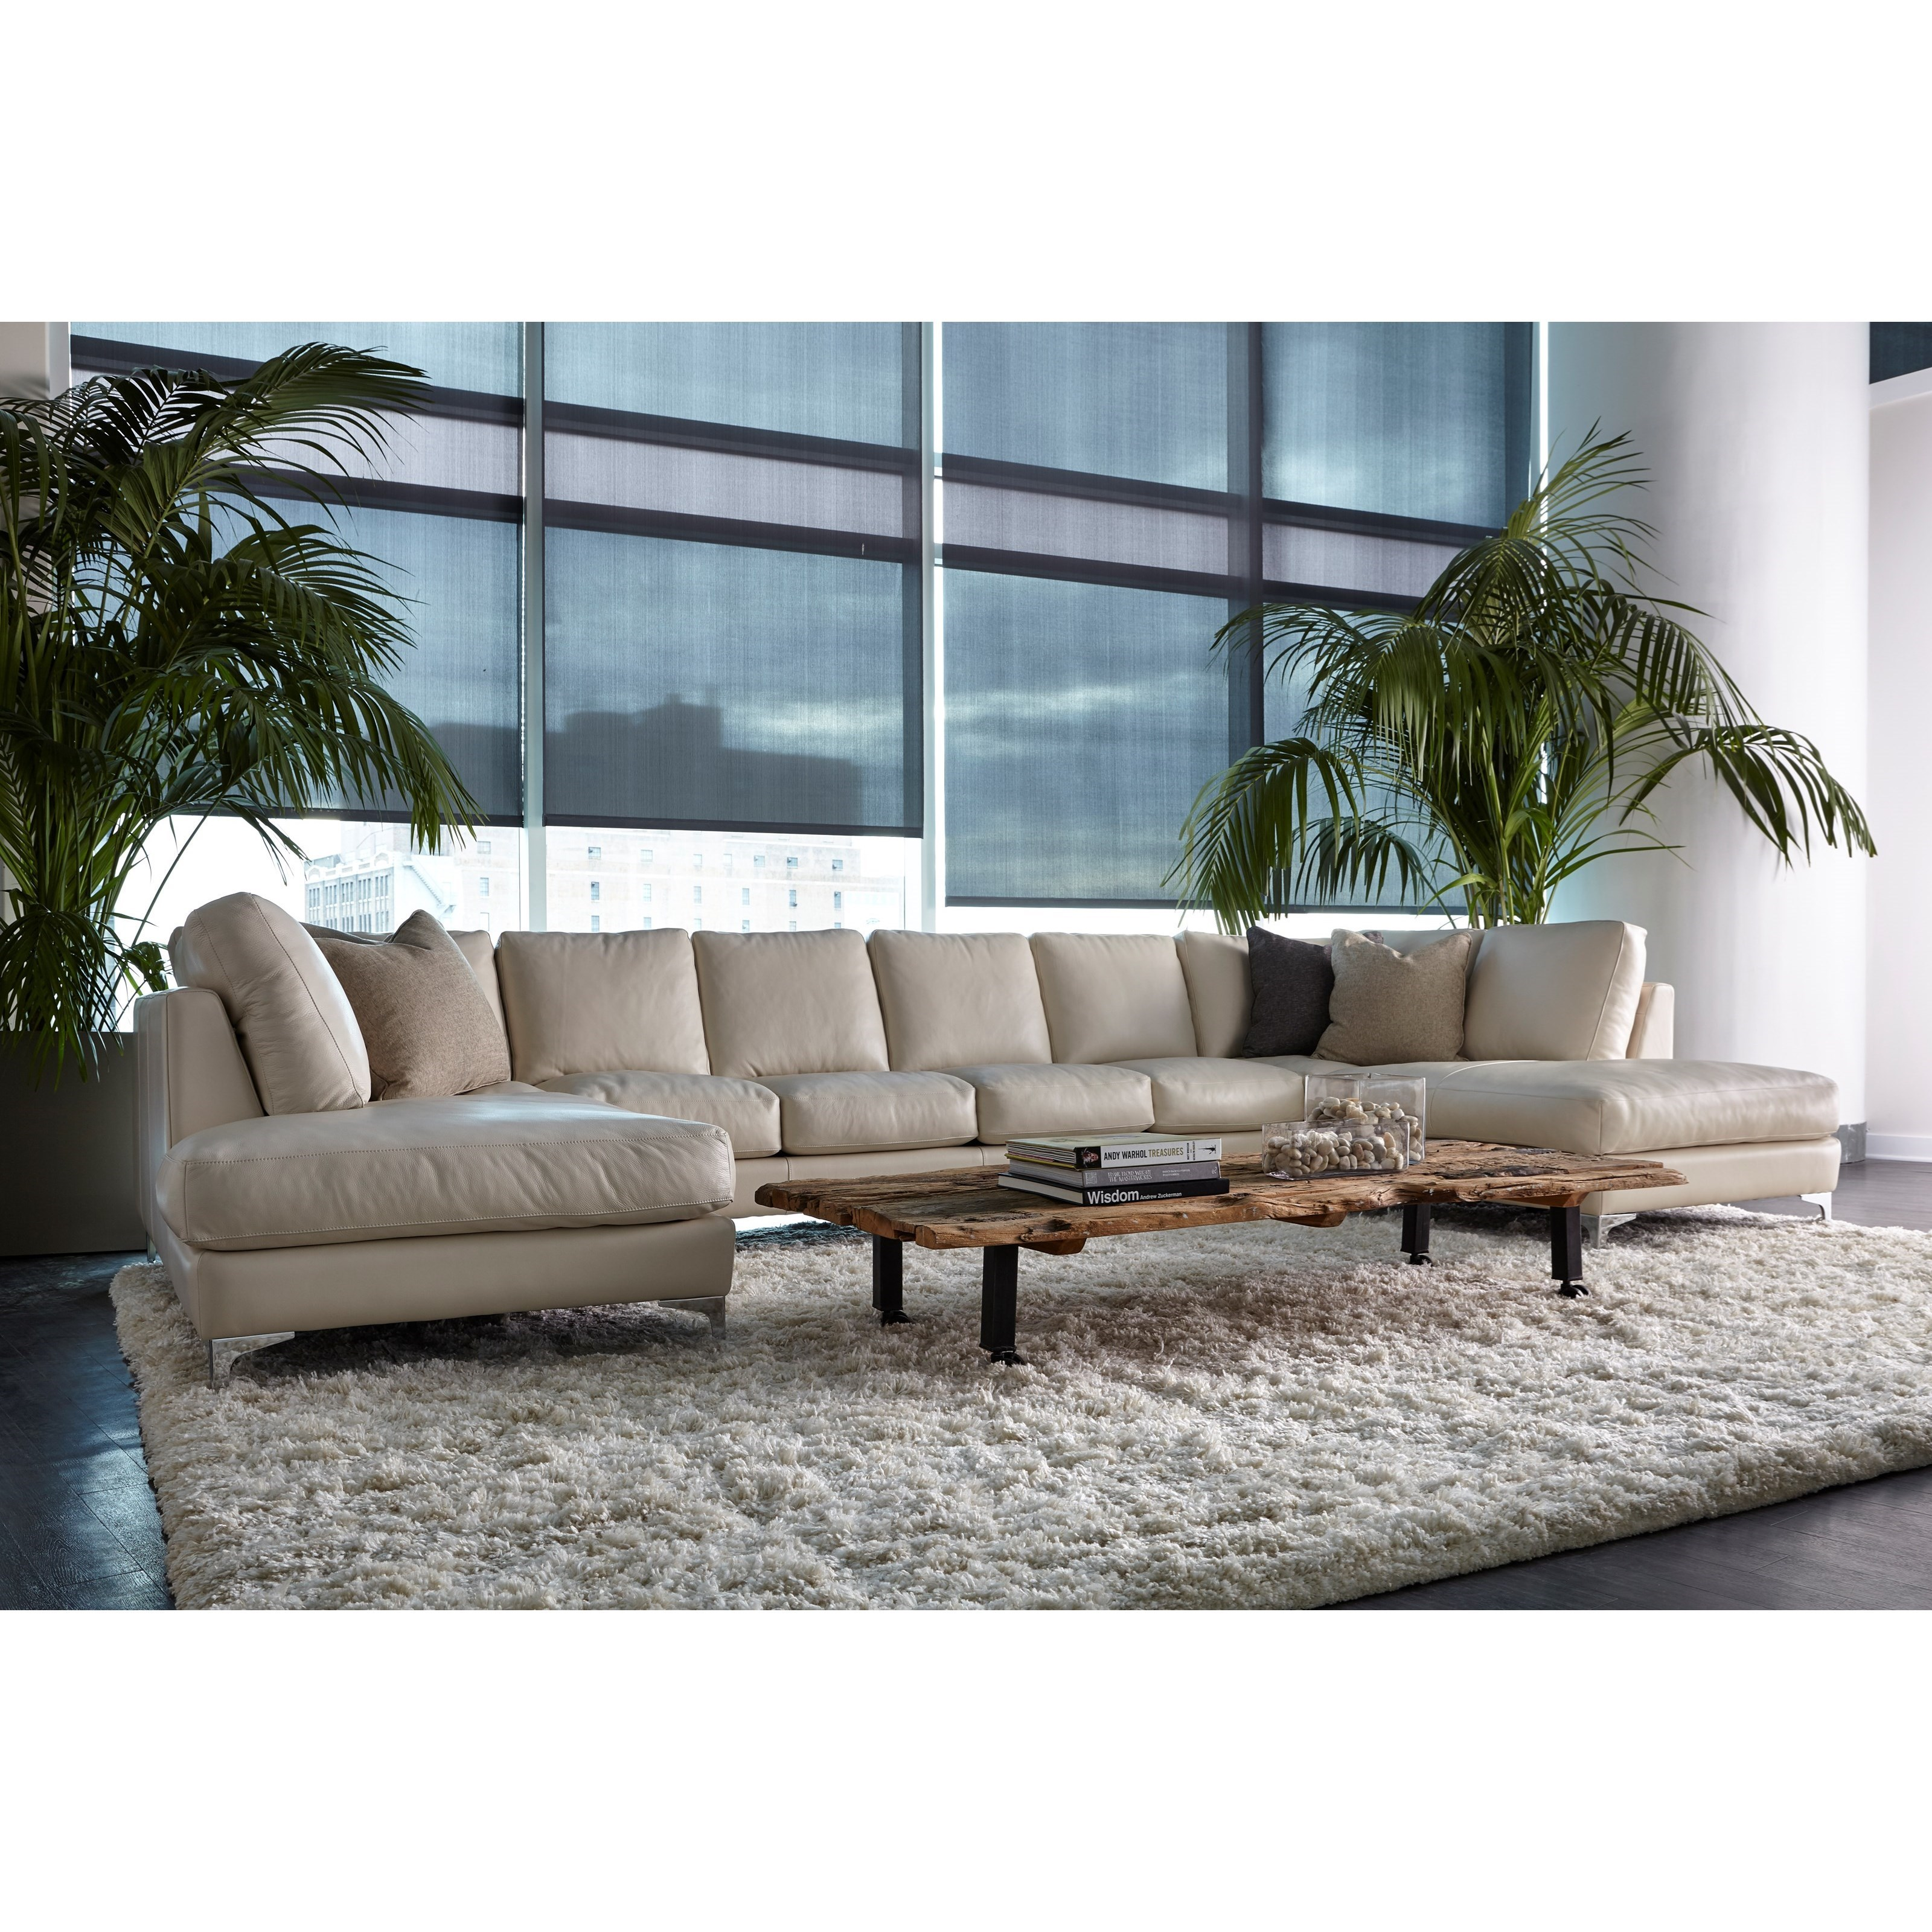 American Leather Kendall Contemporary 6 Seat U Shape